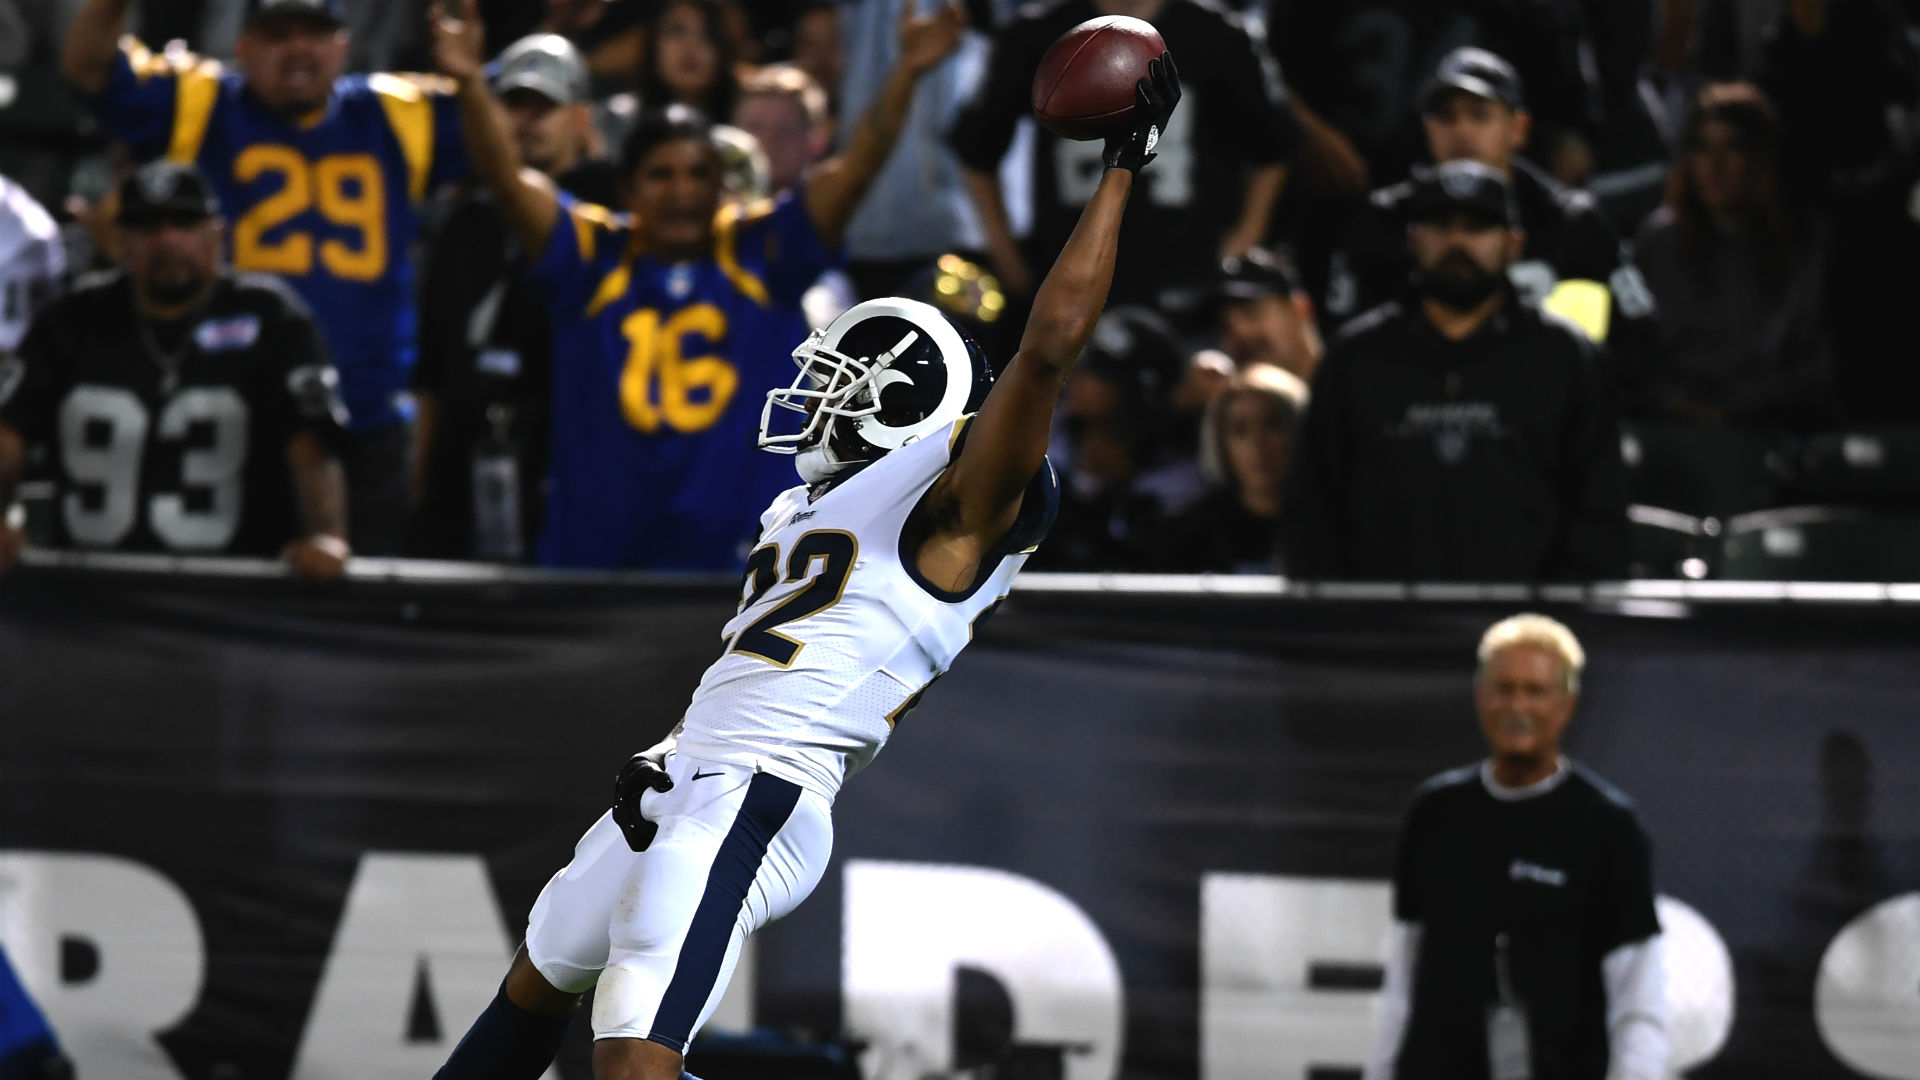 Rams' Marcus Peters fined $13,000 for goal-line grab